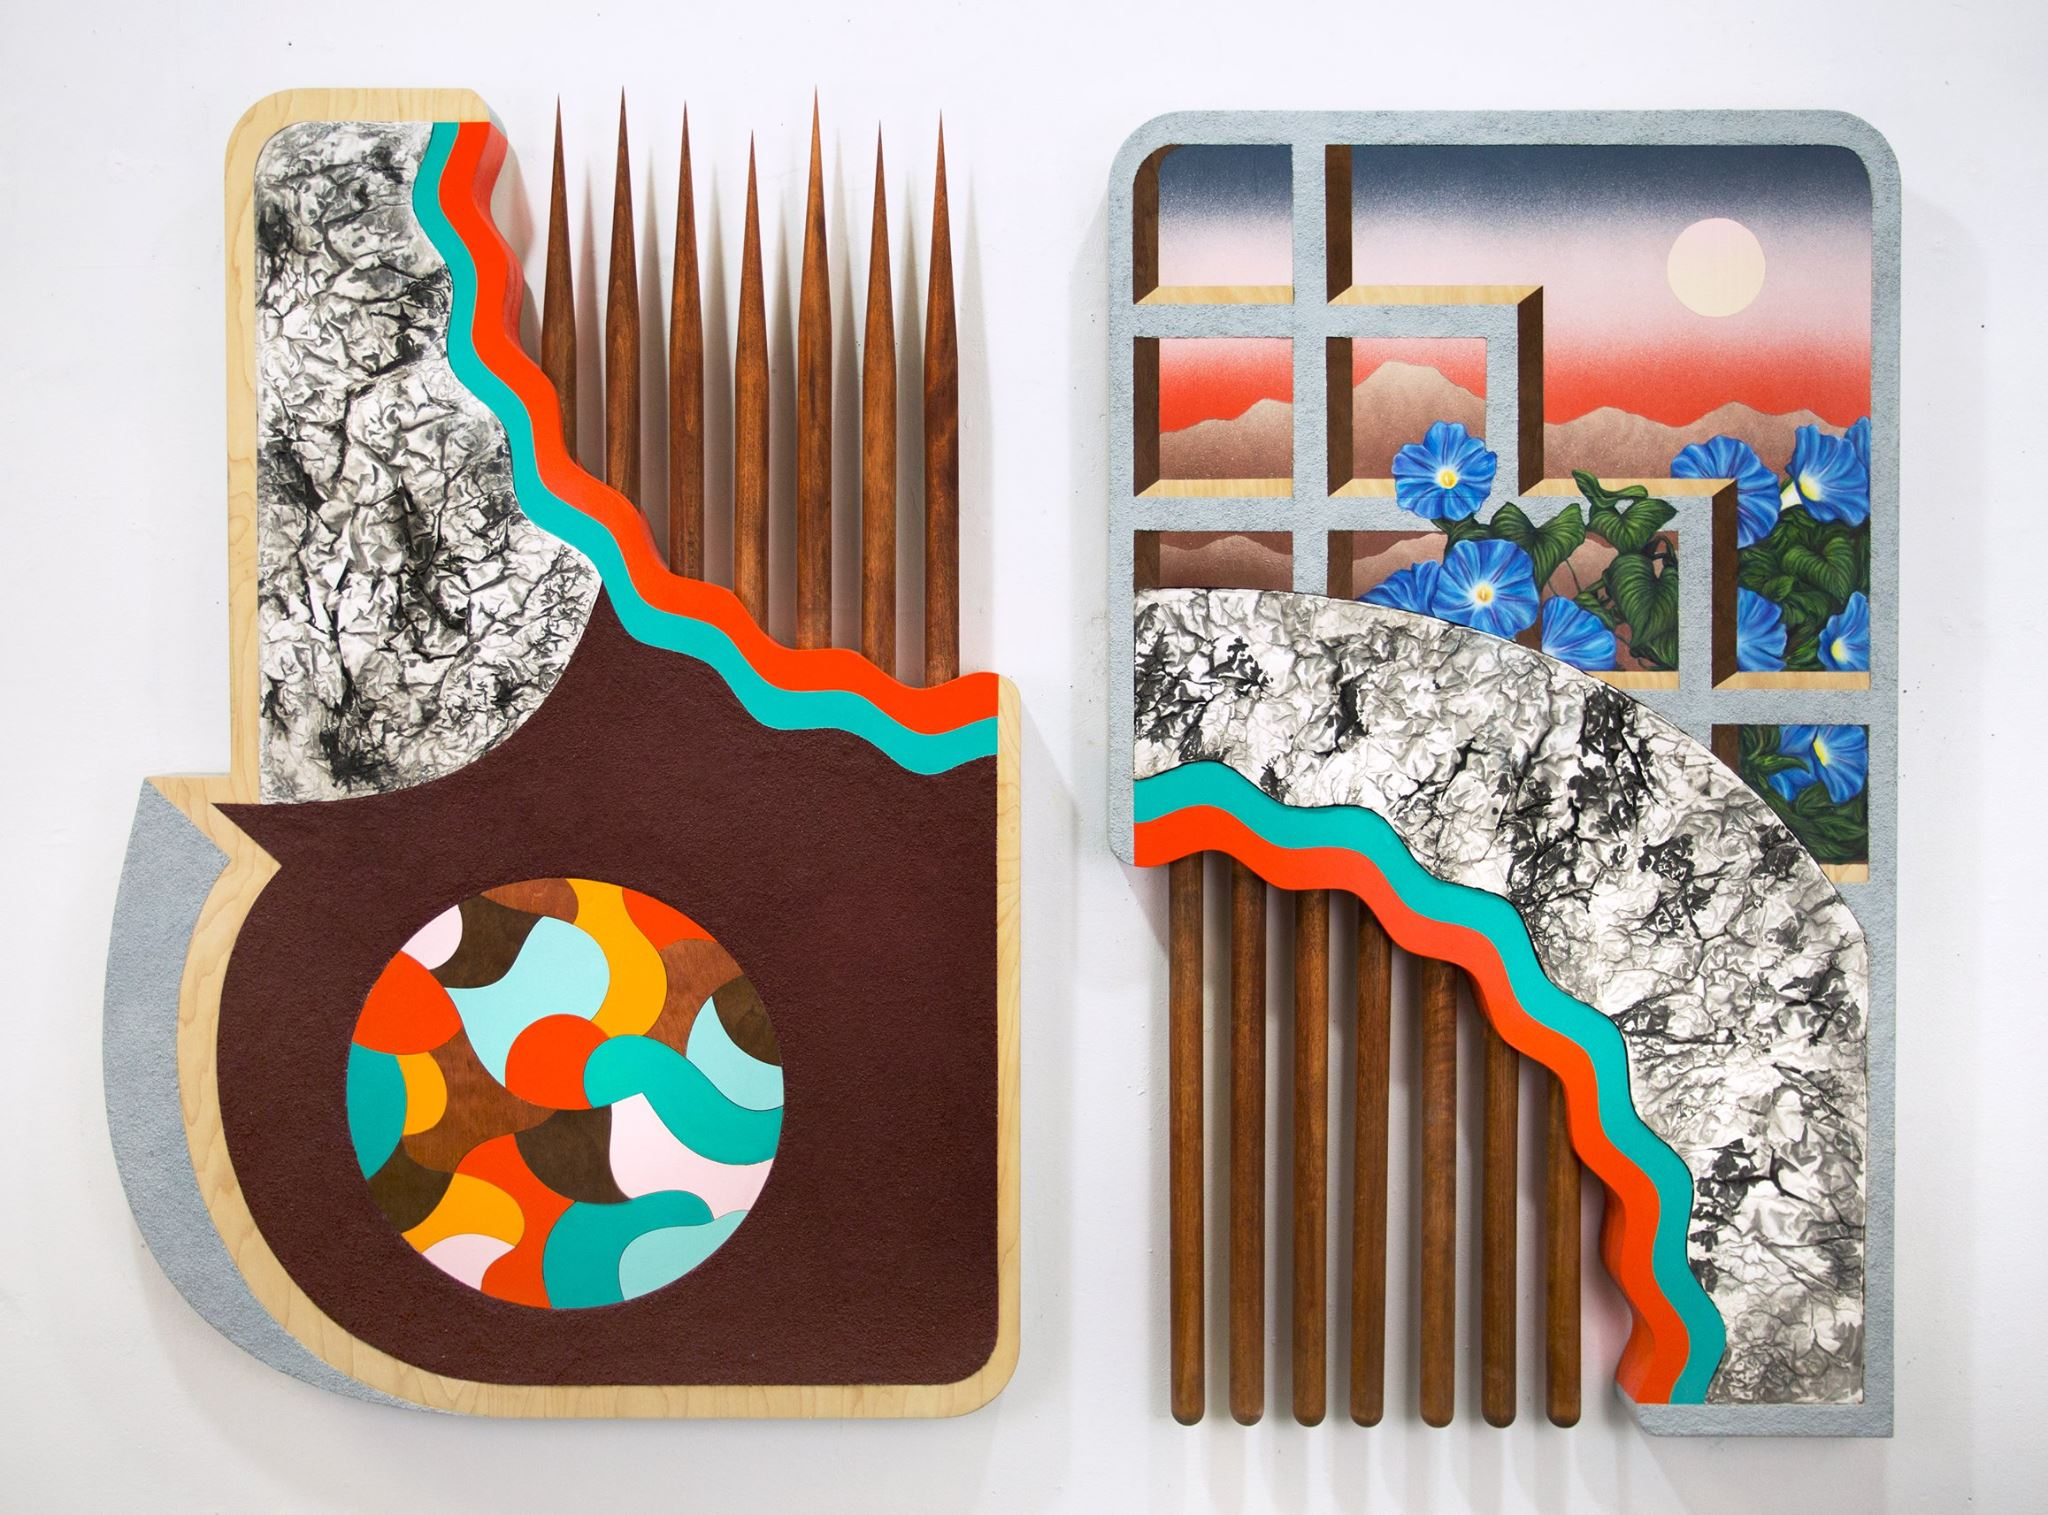 Christian Ruiz Berman ,  Rites of Passage , 2016 Mixed media on shaped panels with birch dowels and hydrocal inlay 58 x 36""